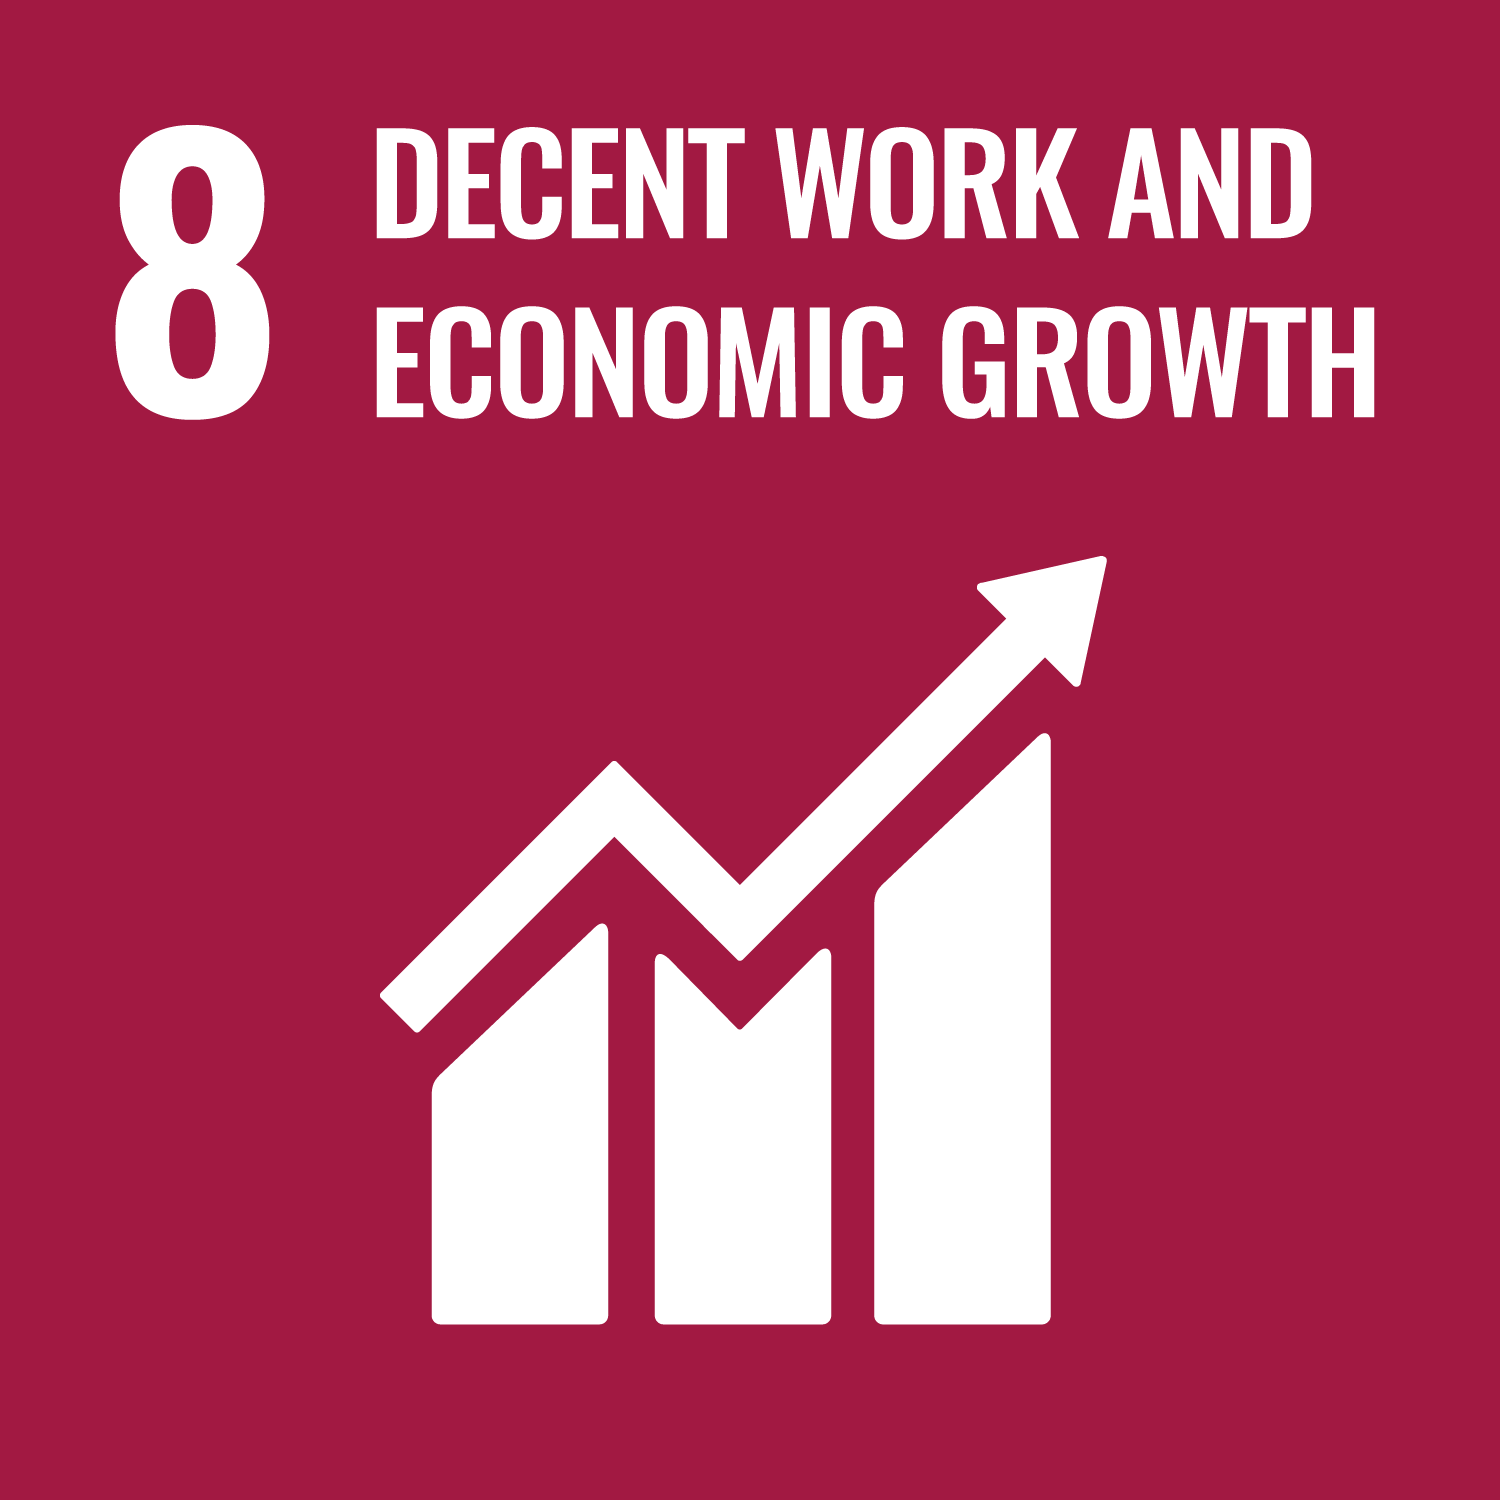 SDG 8 – Decent Work and Economic Growth